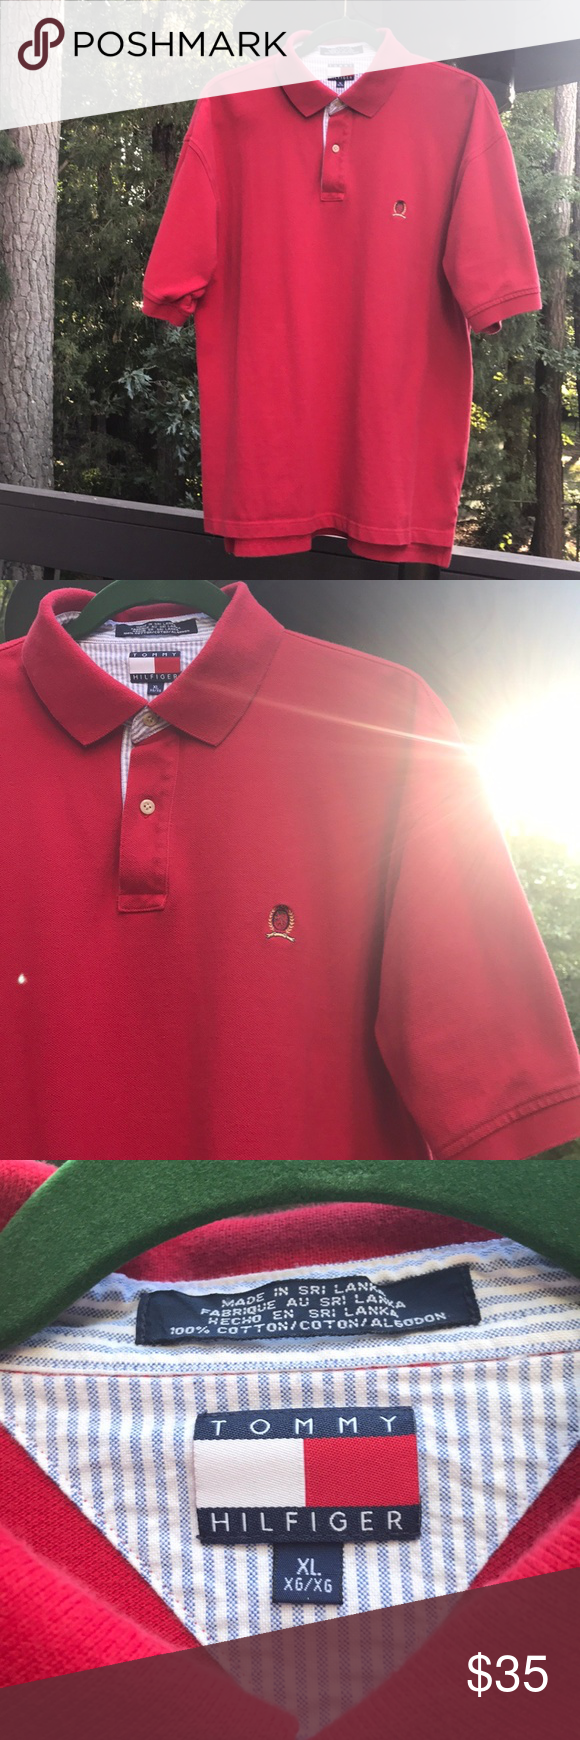 6bd1e429 Men's Vintage Tommy Hilfiger Polo Shirt Men's XL Vintage Red Tommy Hilfiger  Polo Shirt. Excellent Condition. Classic Polo Shirt. SIZE: Extra Large.